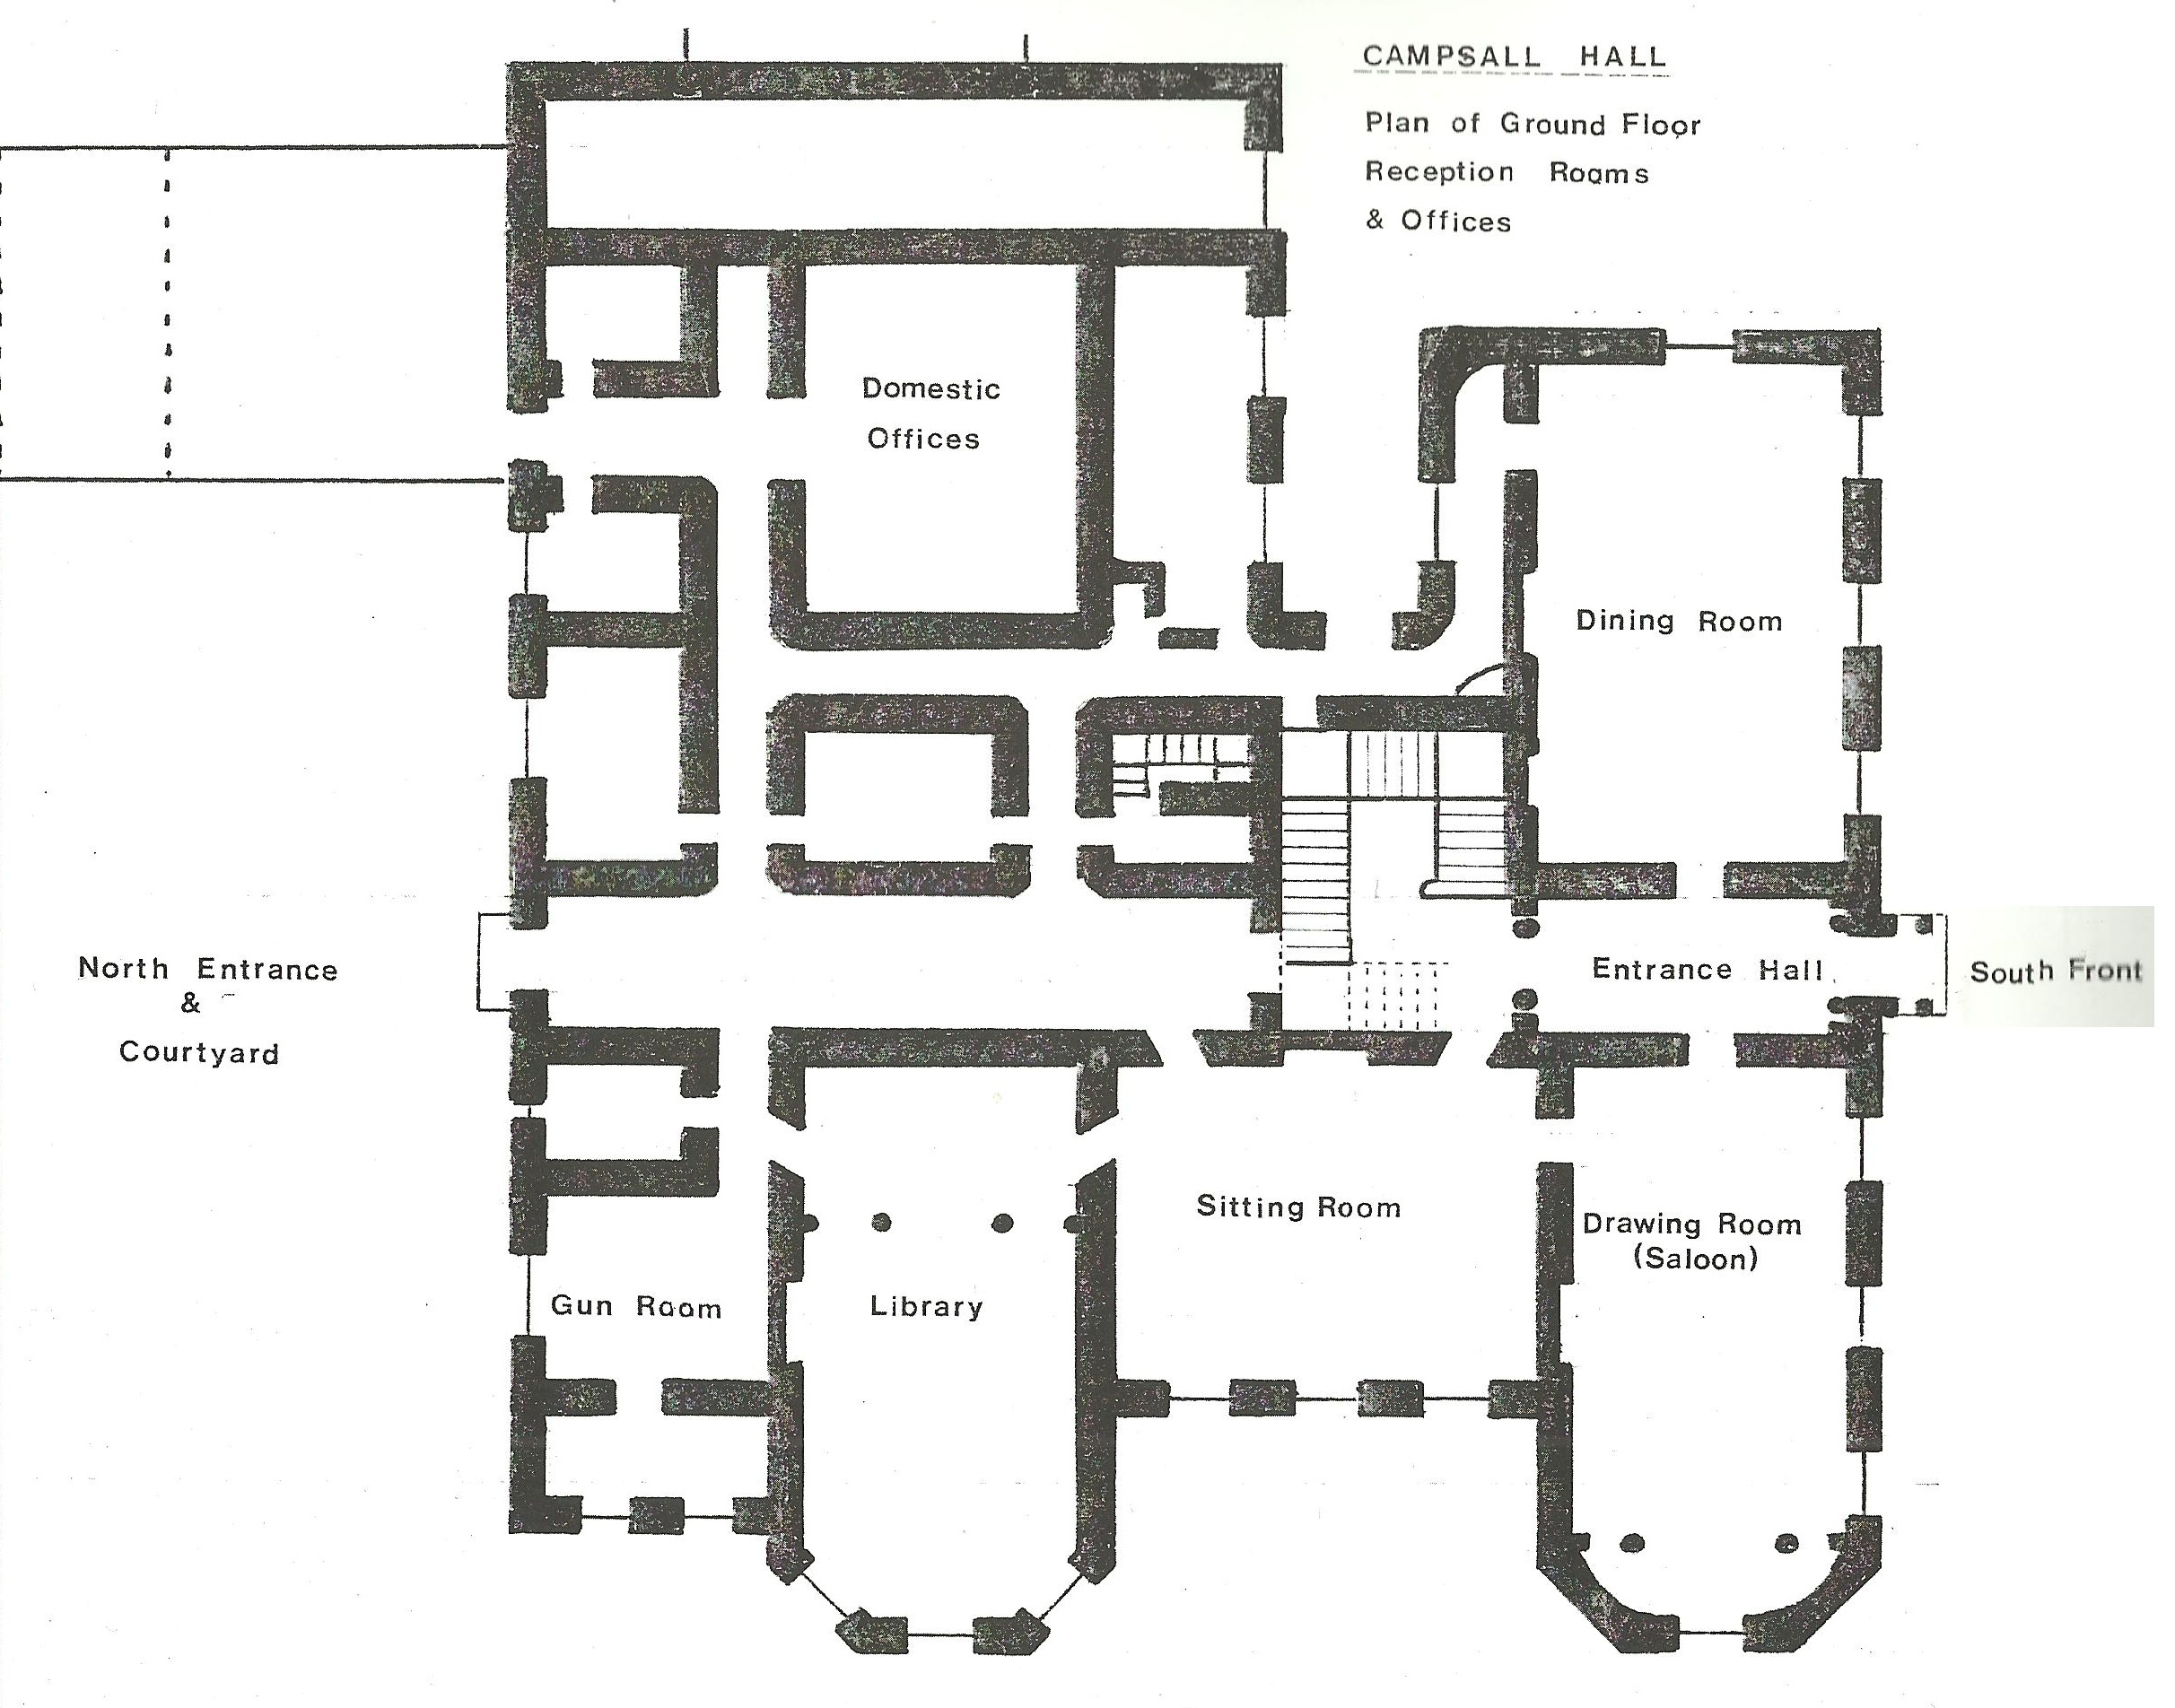 Ground floor plan of campsall hall